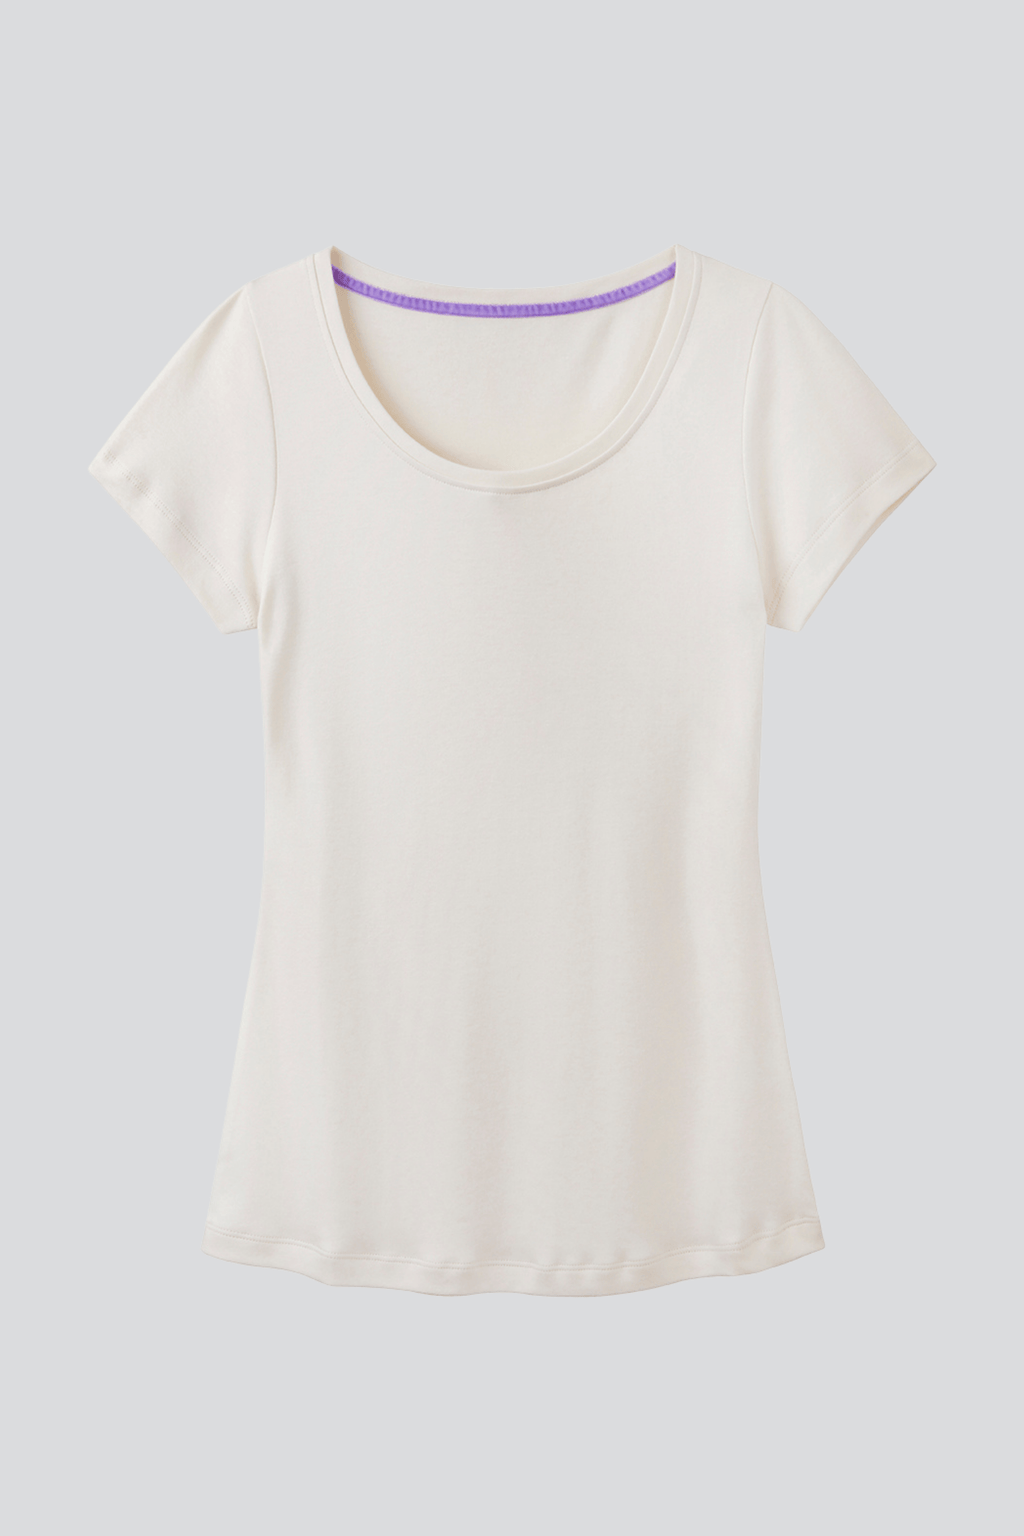 Scoop Neck Cotton Modal Blend T-shirt Short Sleeve T-shirt Lavender Hill Clothing